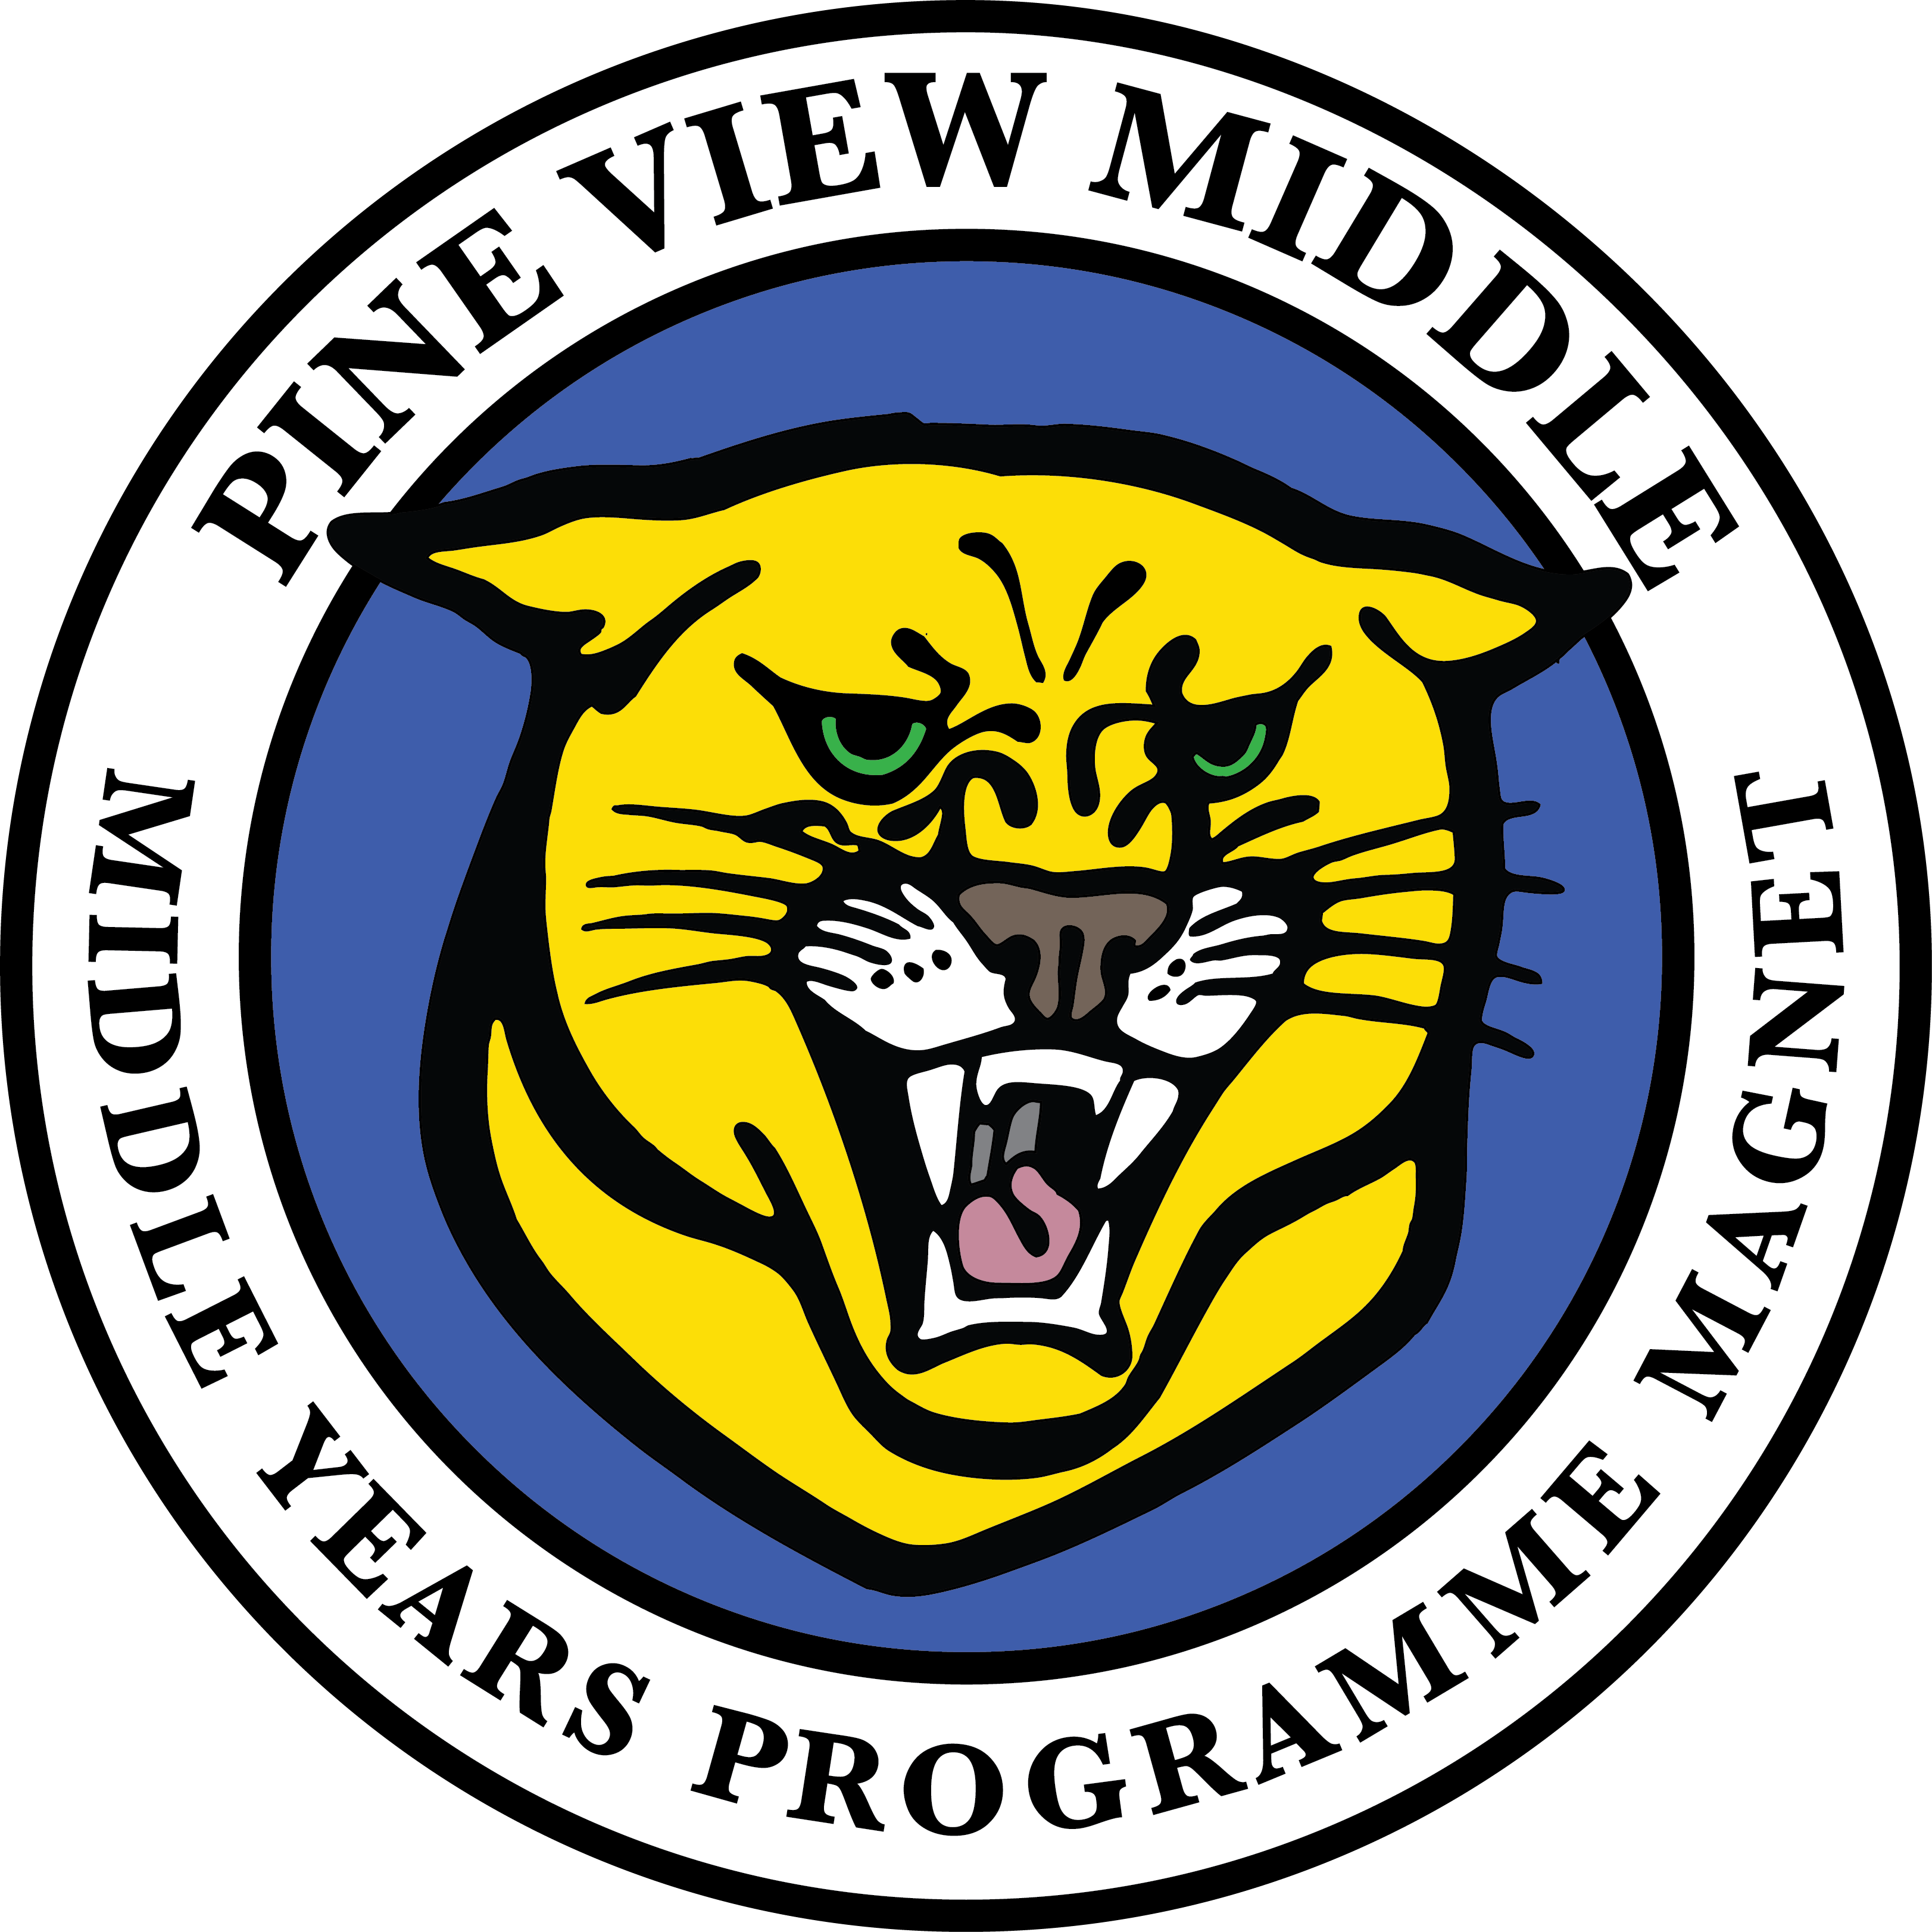 Pine View Middle